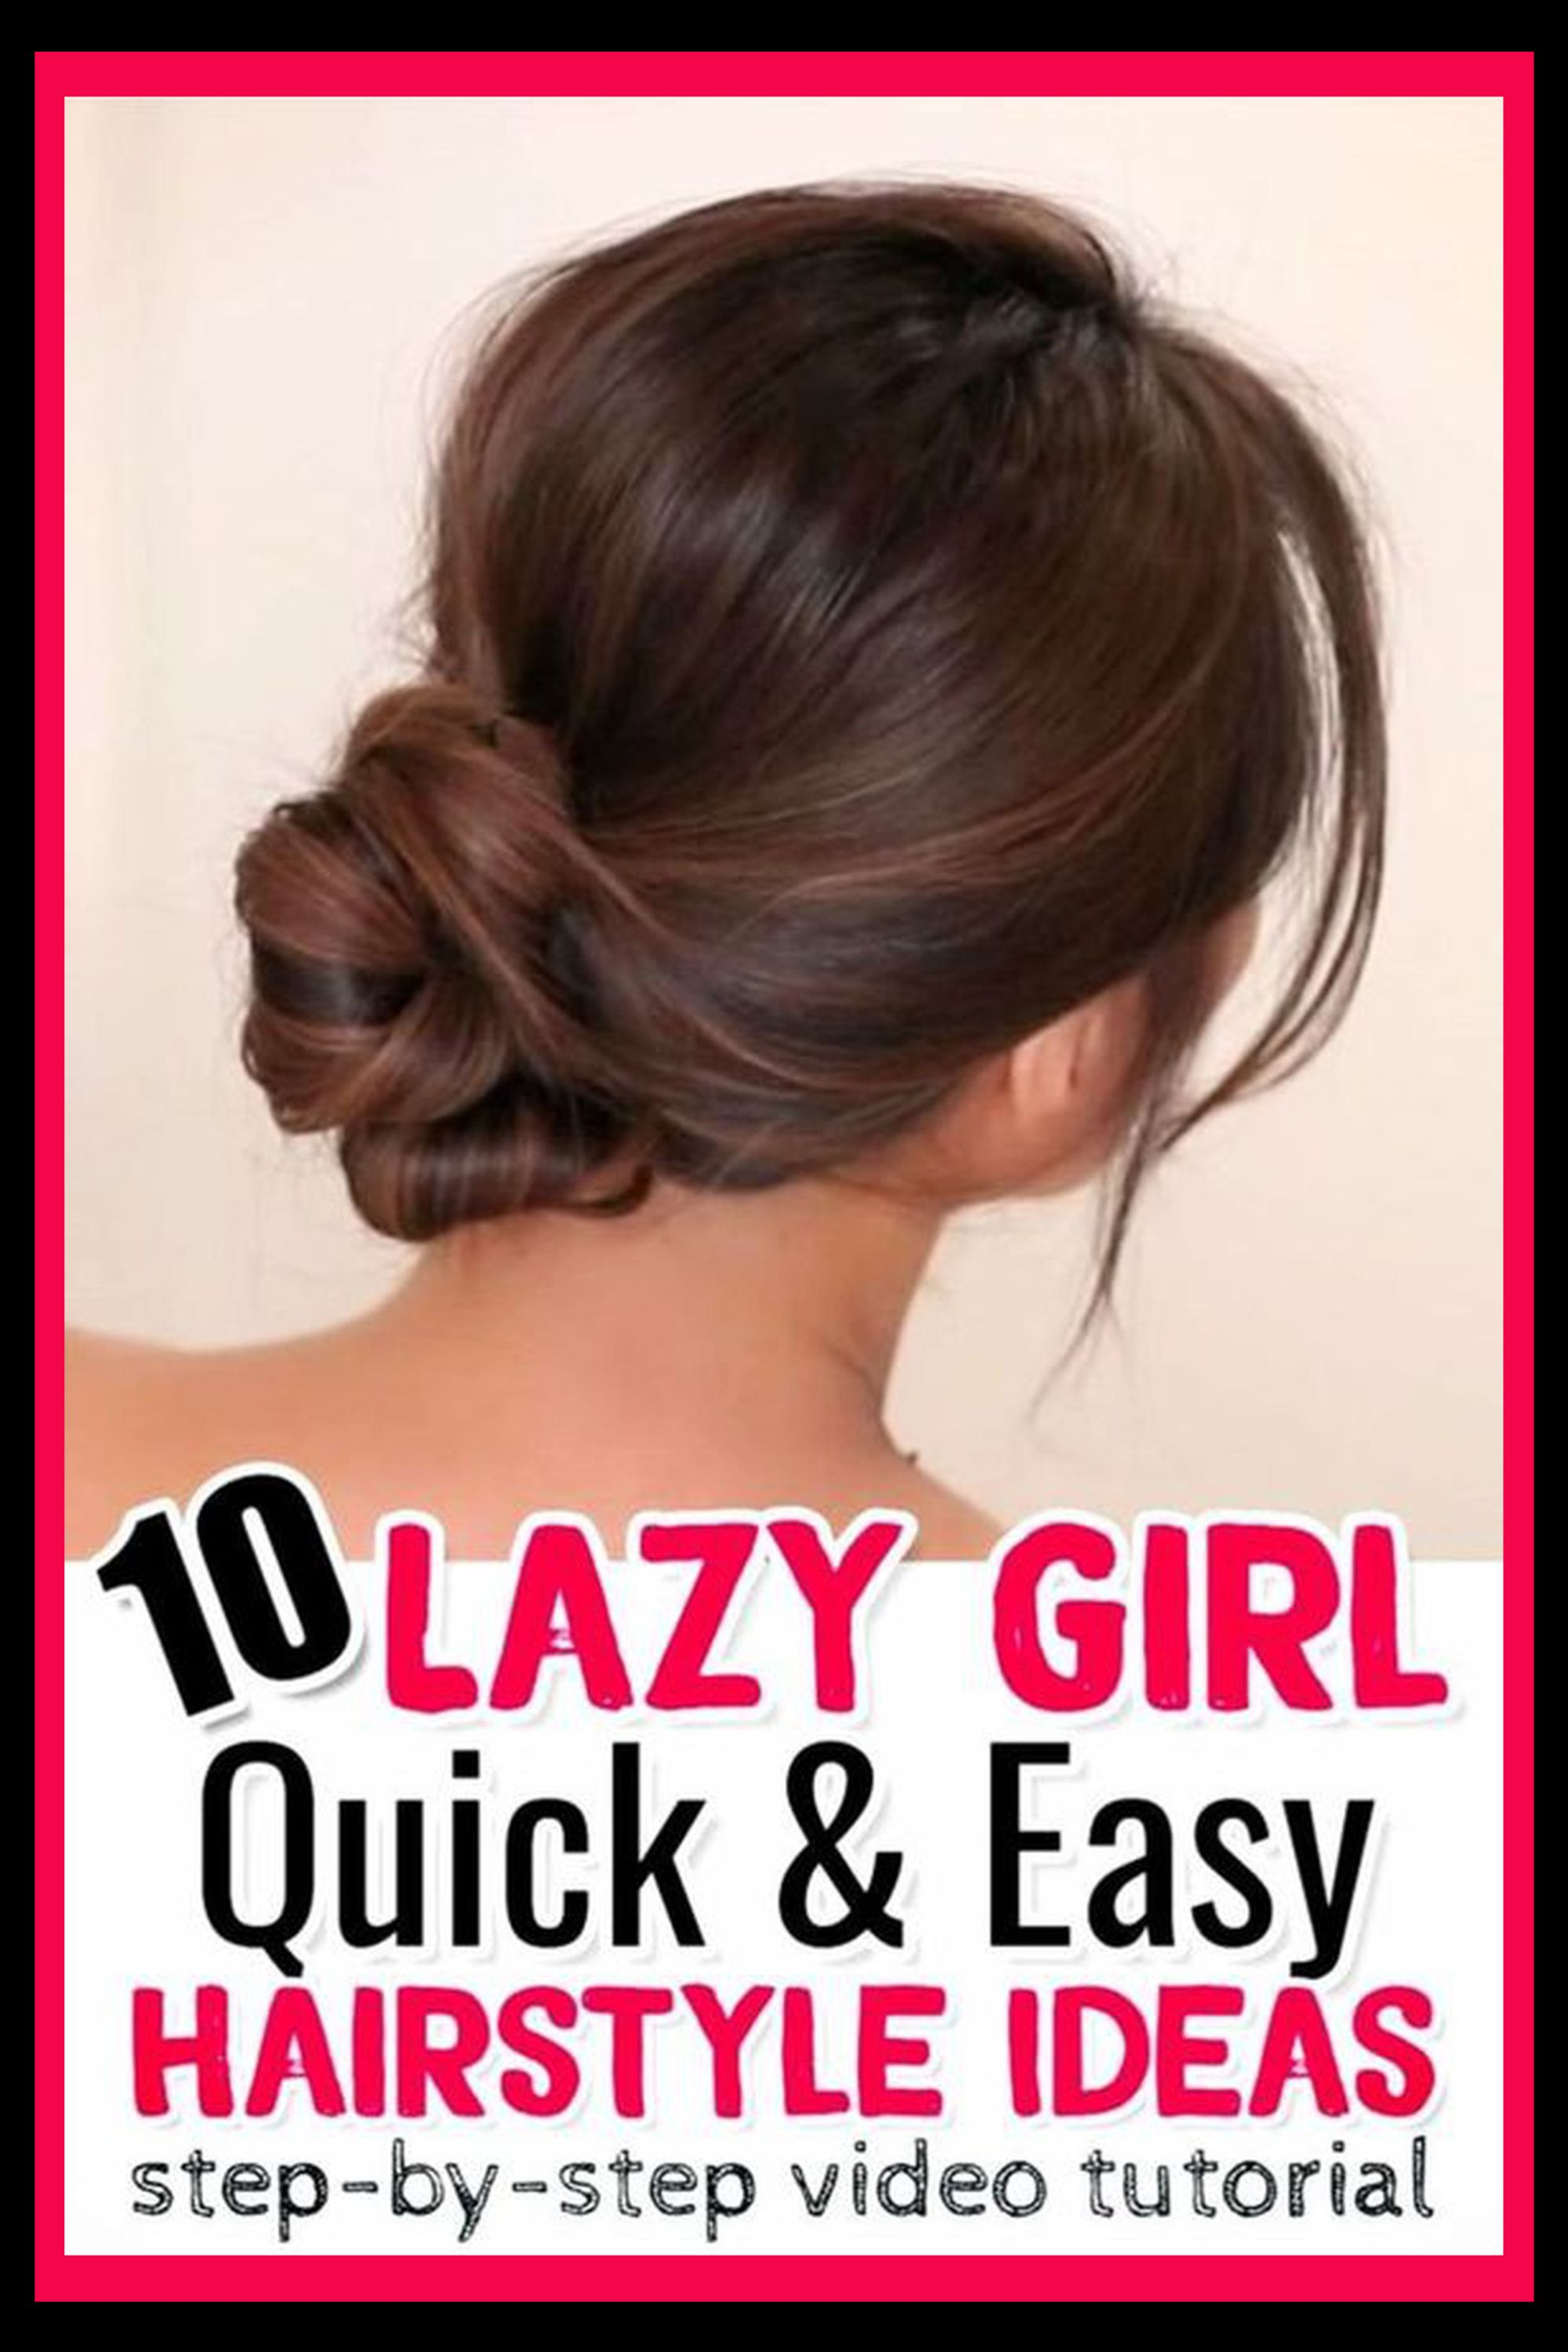 10 Easy Lazy Girl Hairstyle Ideas Step By Step Video Tutorials For Lazy Day Running Late Quick Hairstyles Clever Diy Ideas Quick Diy Hairstyles Easy Hairstyle Video Lazy Girl Hairstyles